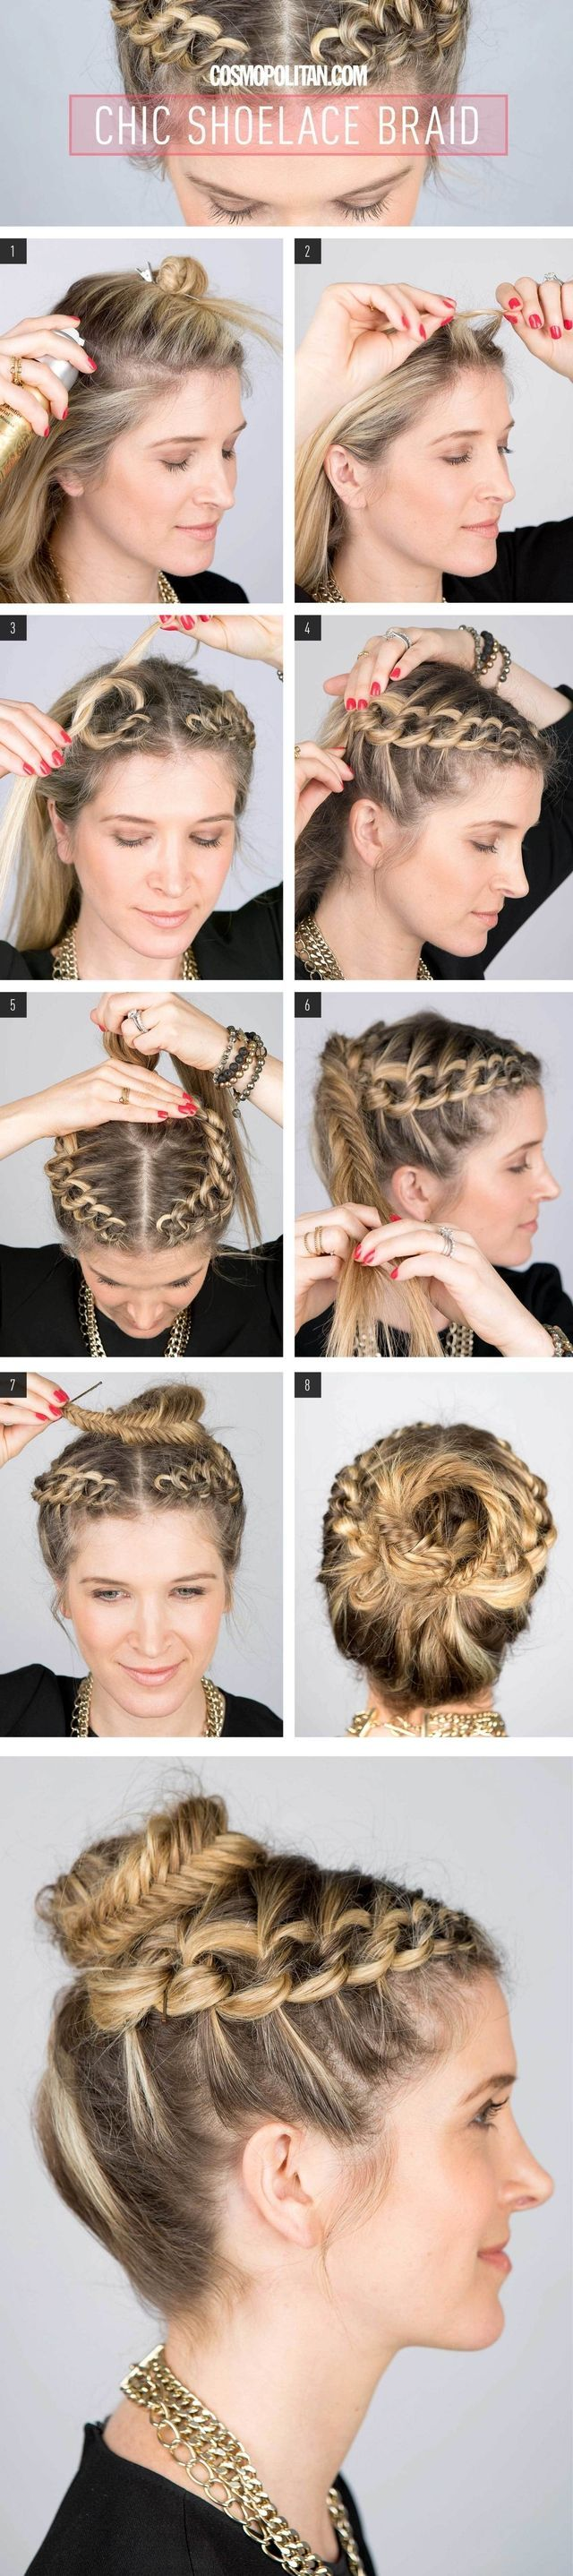 Chic Shoelace Braid tutorial